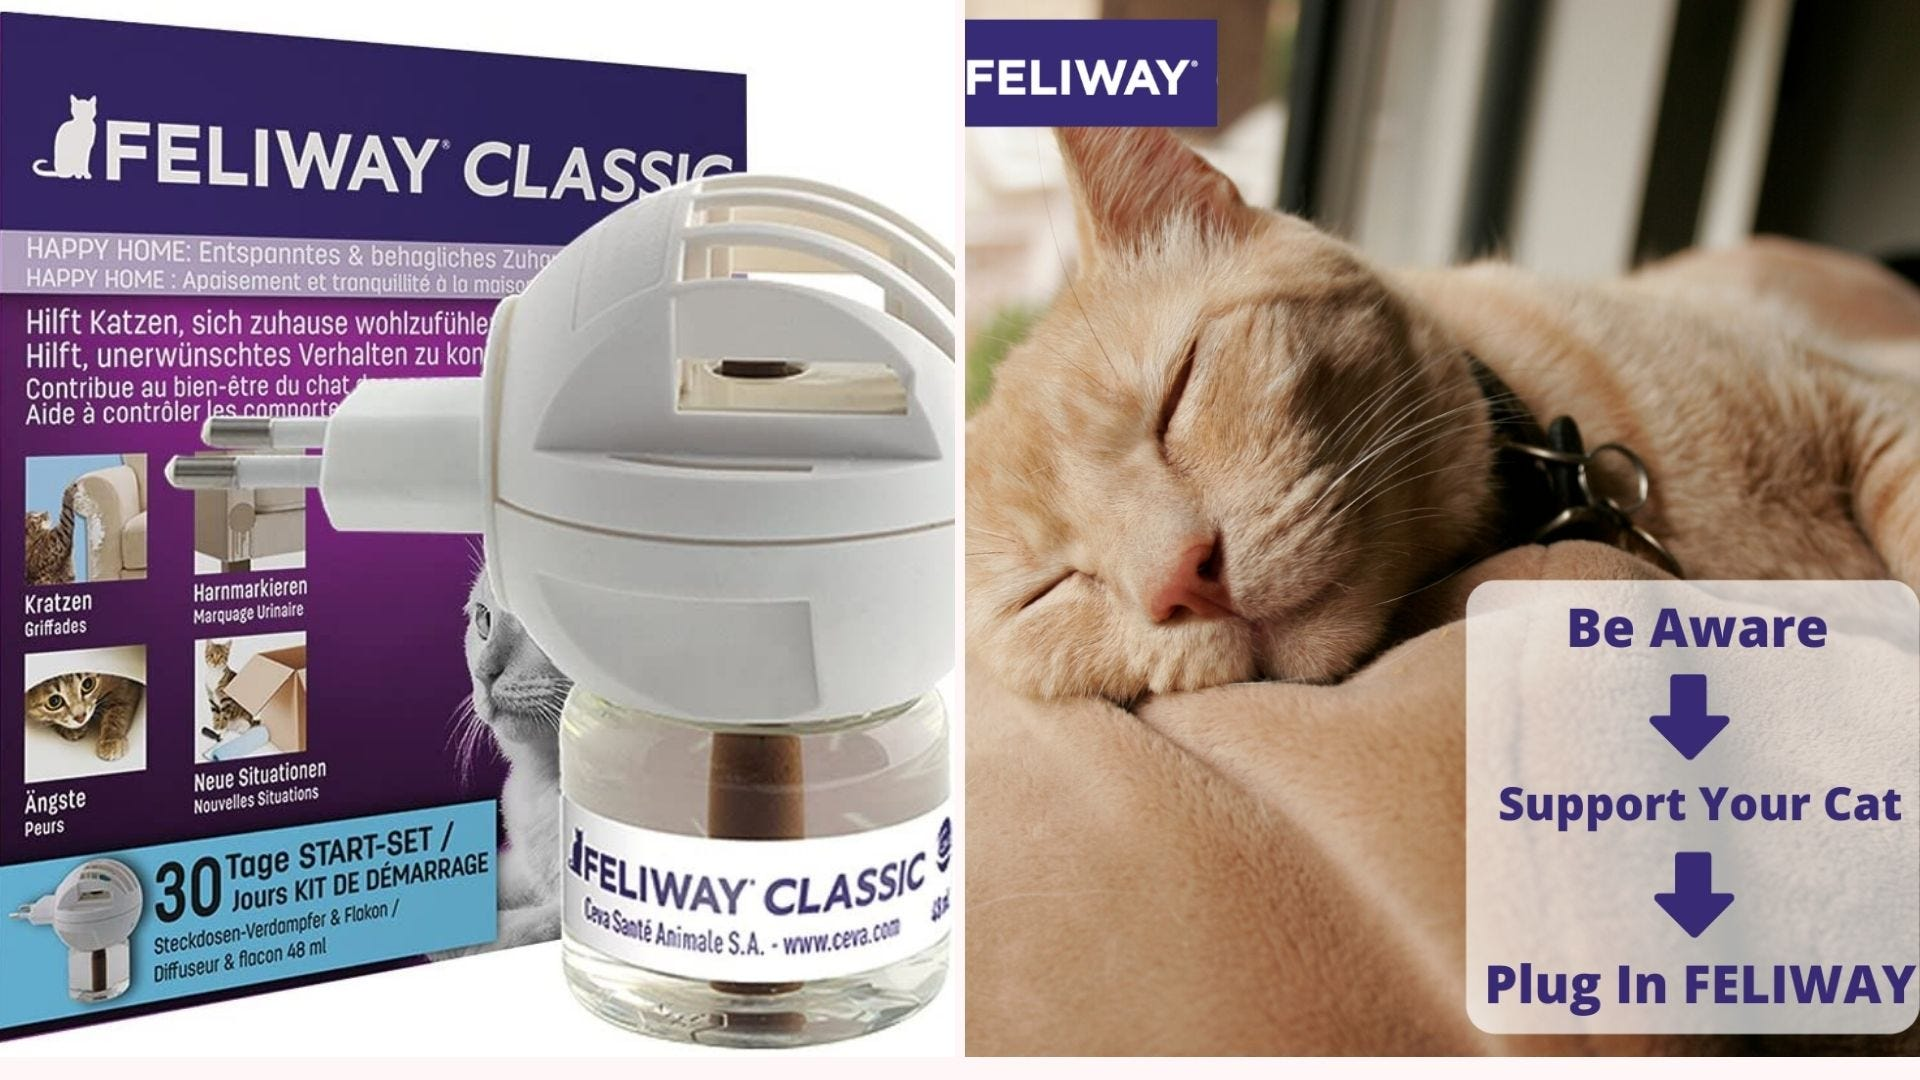 The Feliway Classic cat calming diffuser and an orange tabby cat sleeping on a blanket.